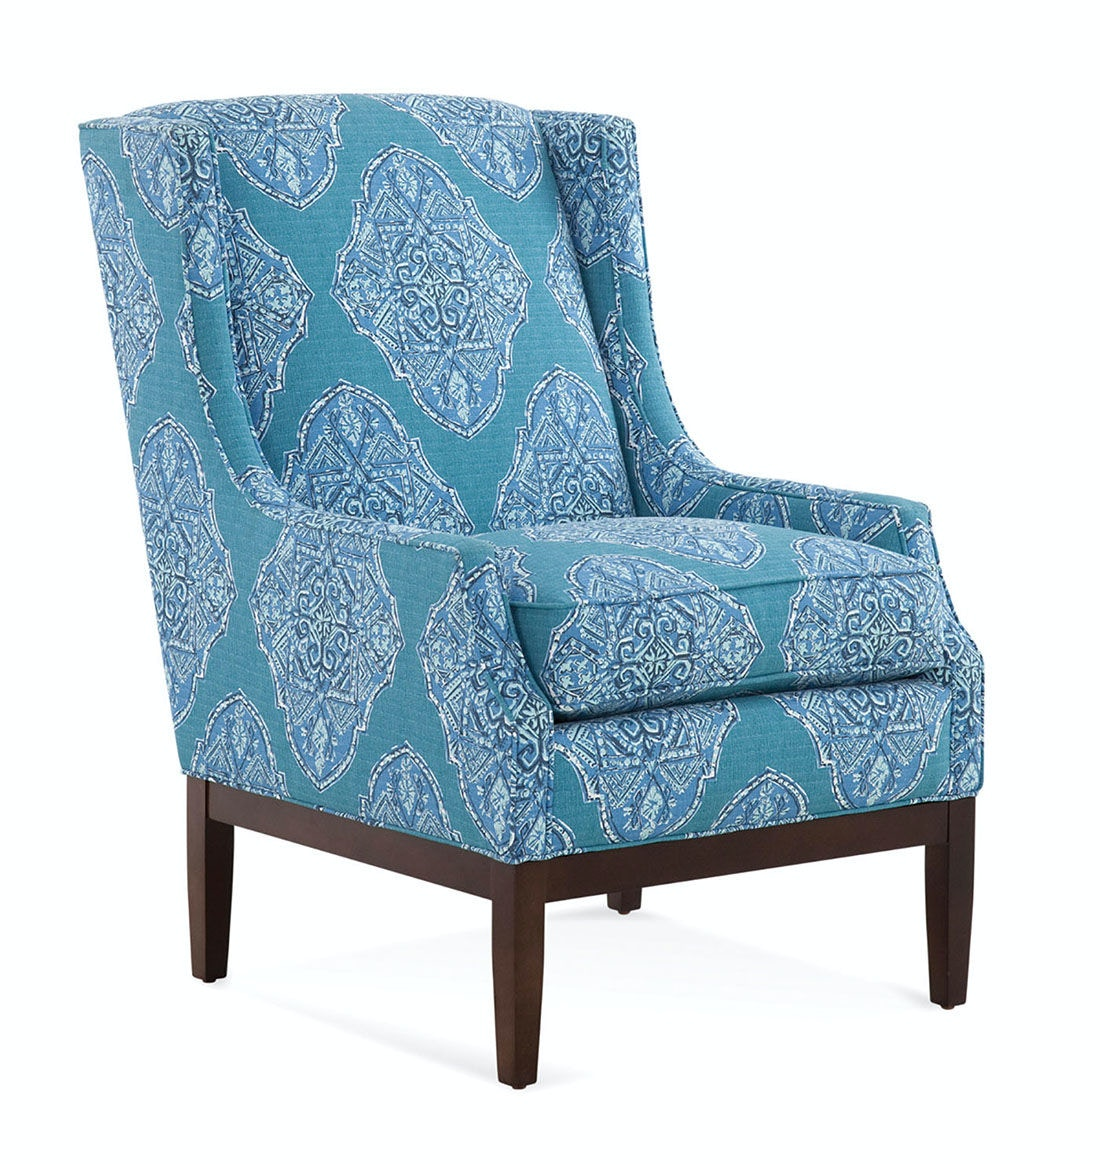 Stanton Wing Chair 5747-007